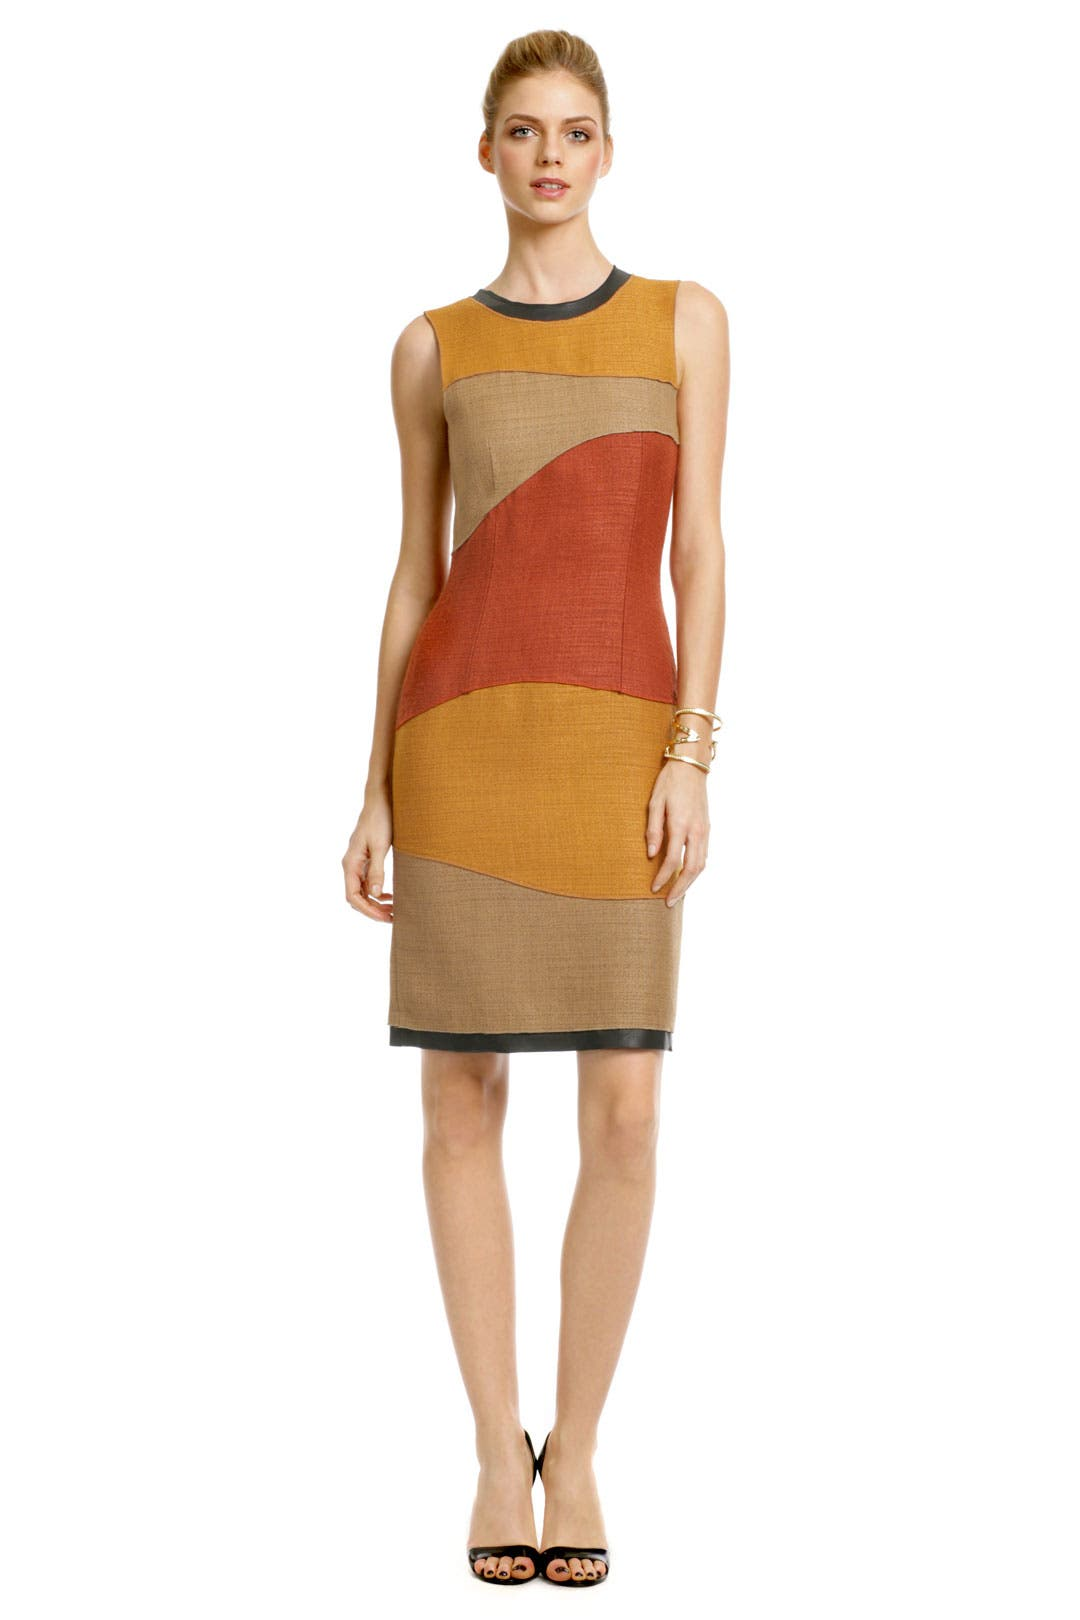 Patchwork Swirl Sheath by Proenza Schouler